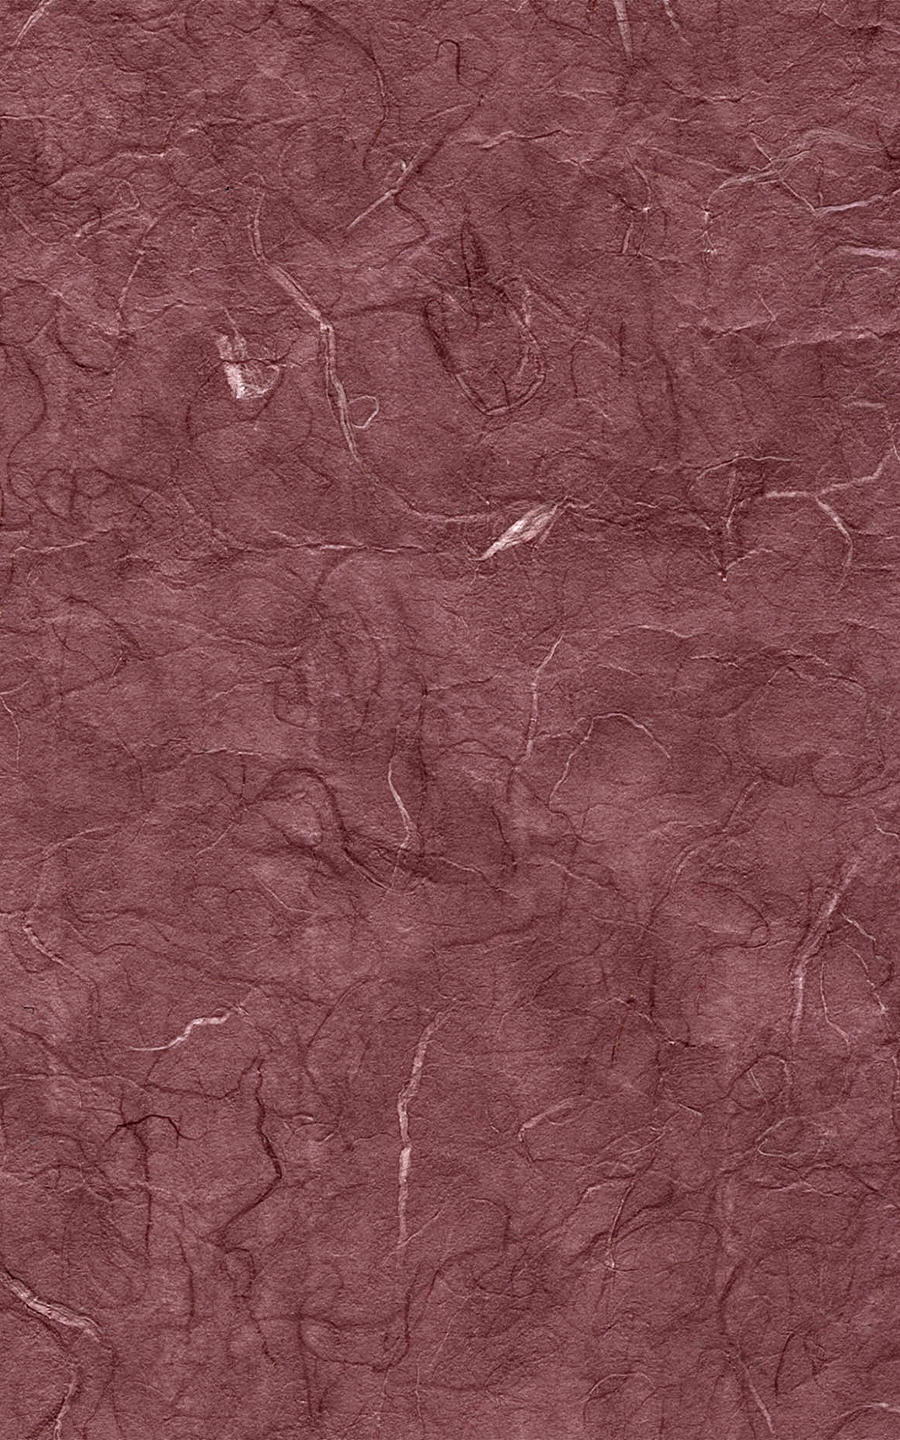 Paper Texture 5 by WDWParksGal-Stock